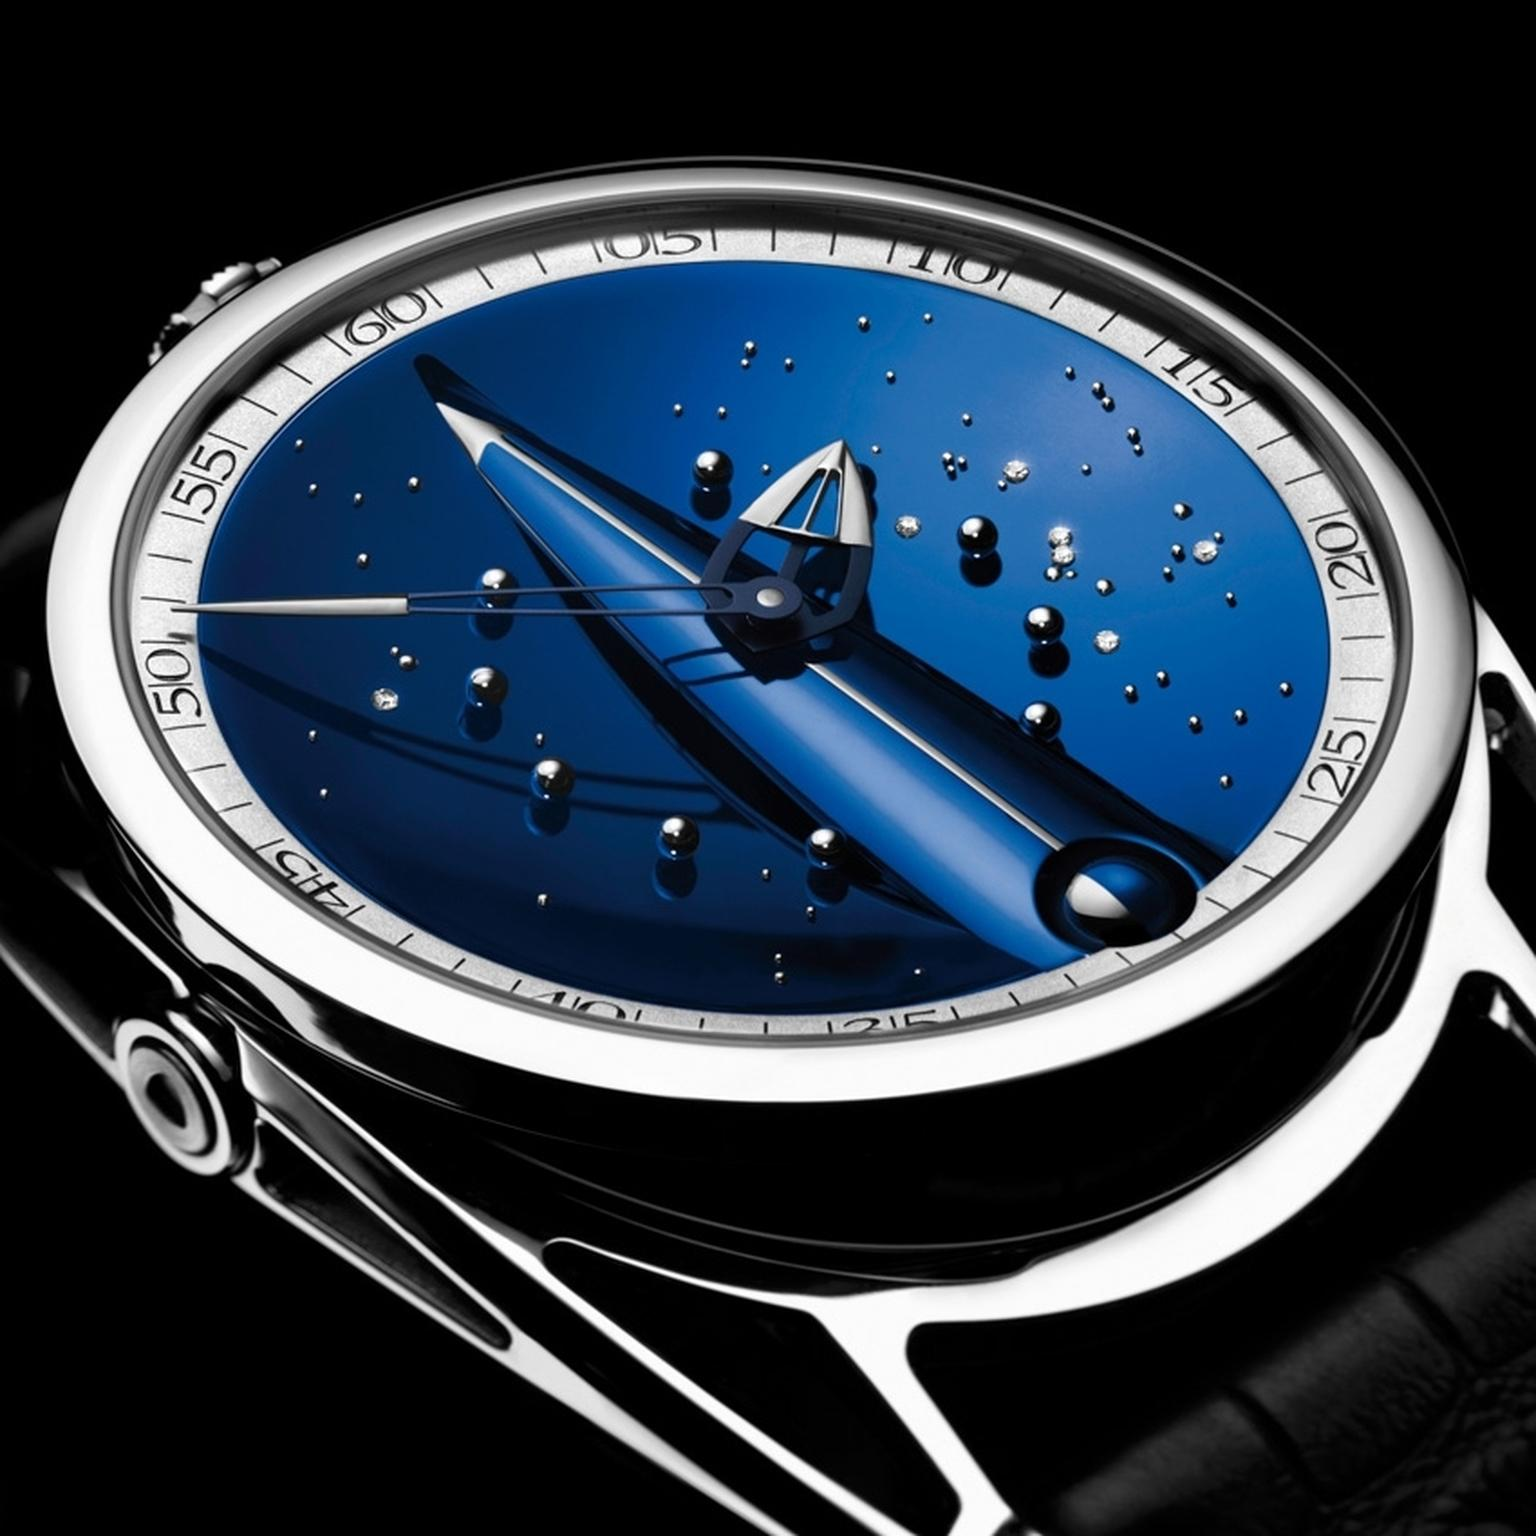 De Bethune DB28 Skybridge watch